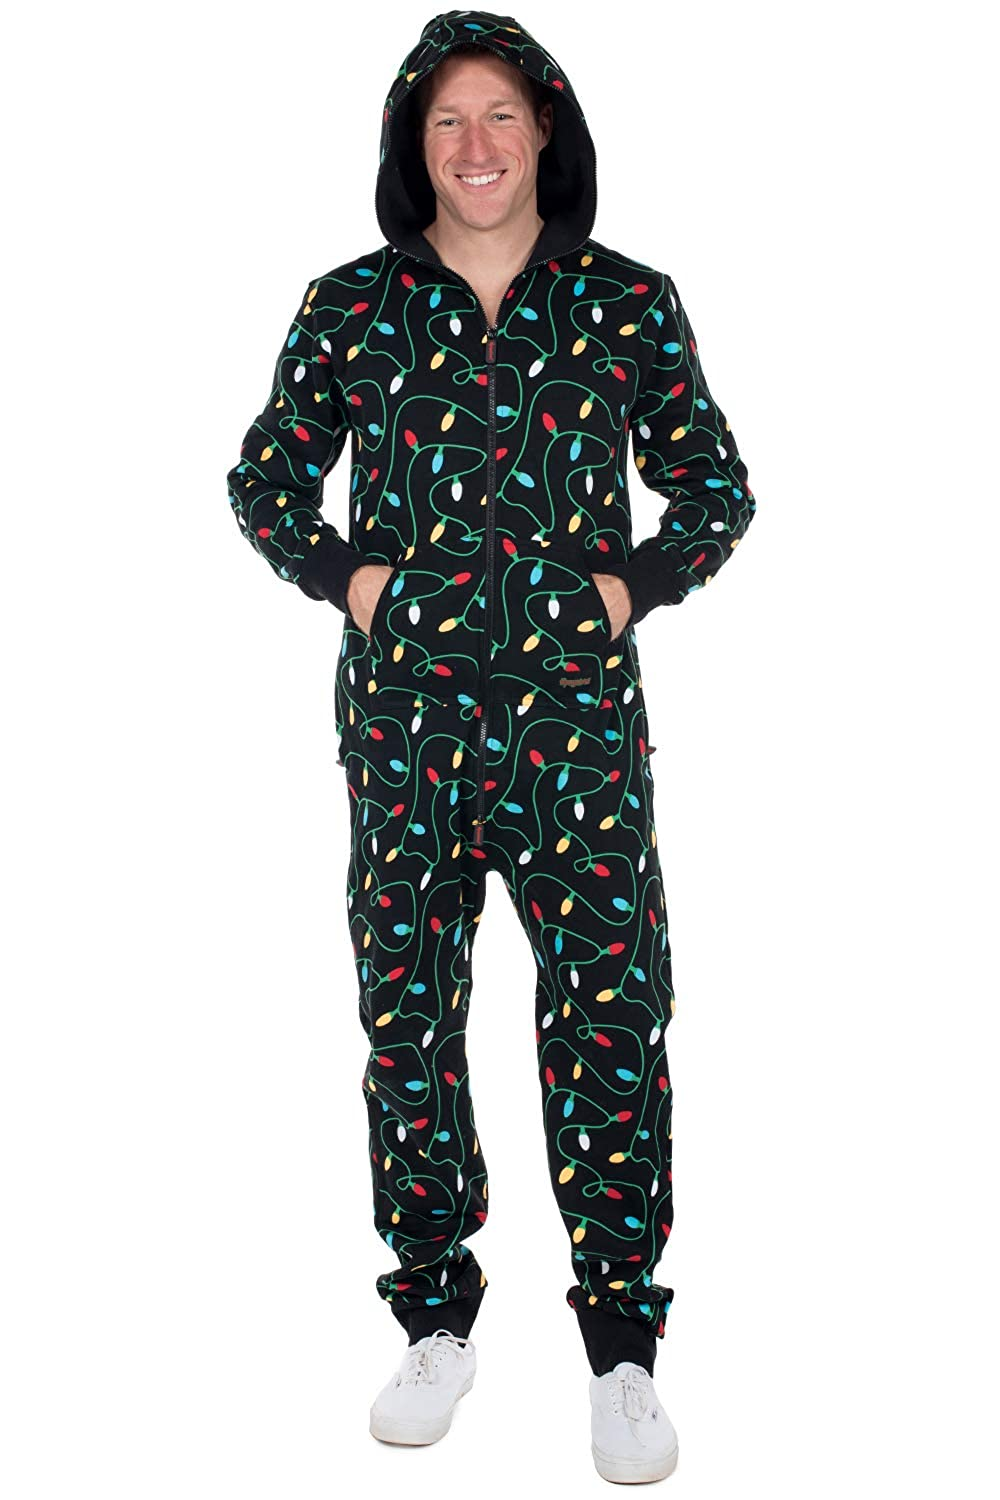 Christmas Jumpsuit Womens.Tipsy Elves Women S And Men S Unisex Black Christmas Lights Jumpsuit Ugly Christmas Sweater Party Adult Onesie